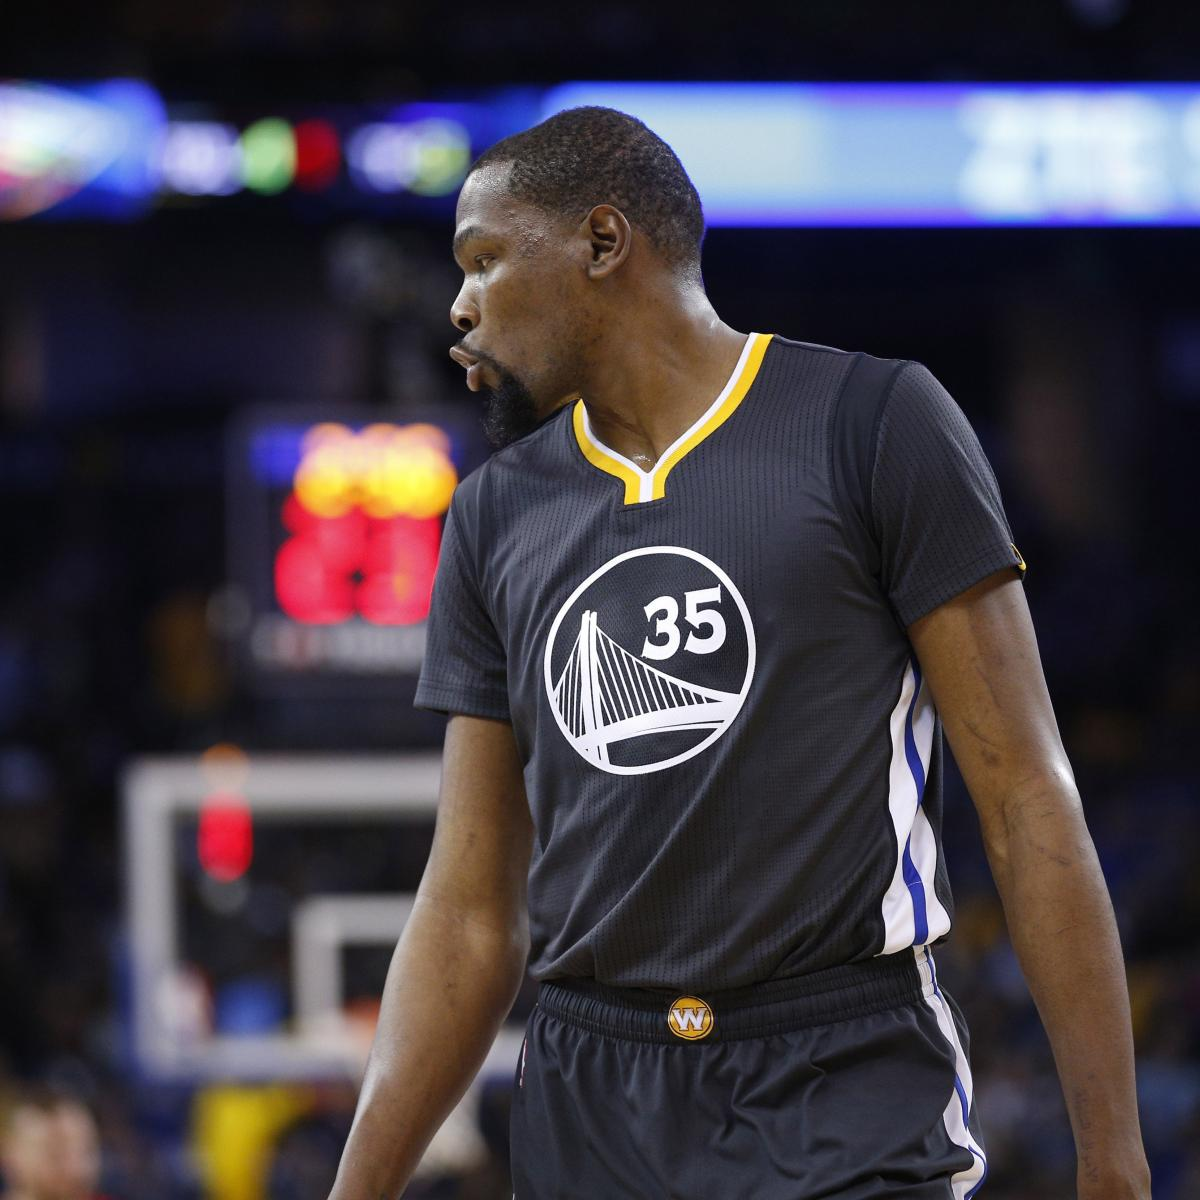 Warriors Kevin Durant Injury Update: Kevin Durant Out For Warriors Vs. Timberwolves Due To